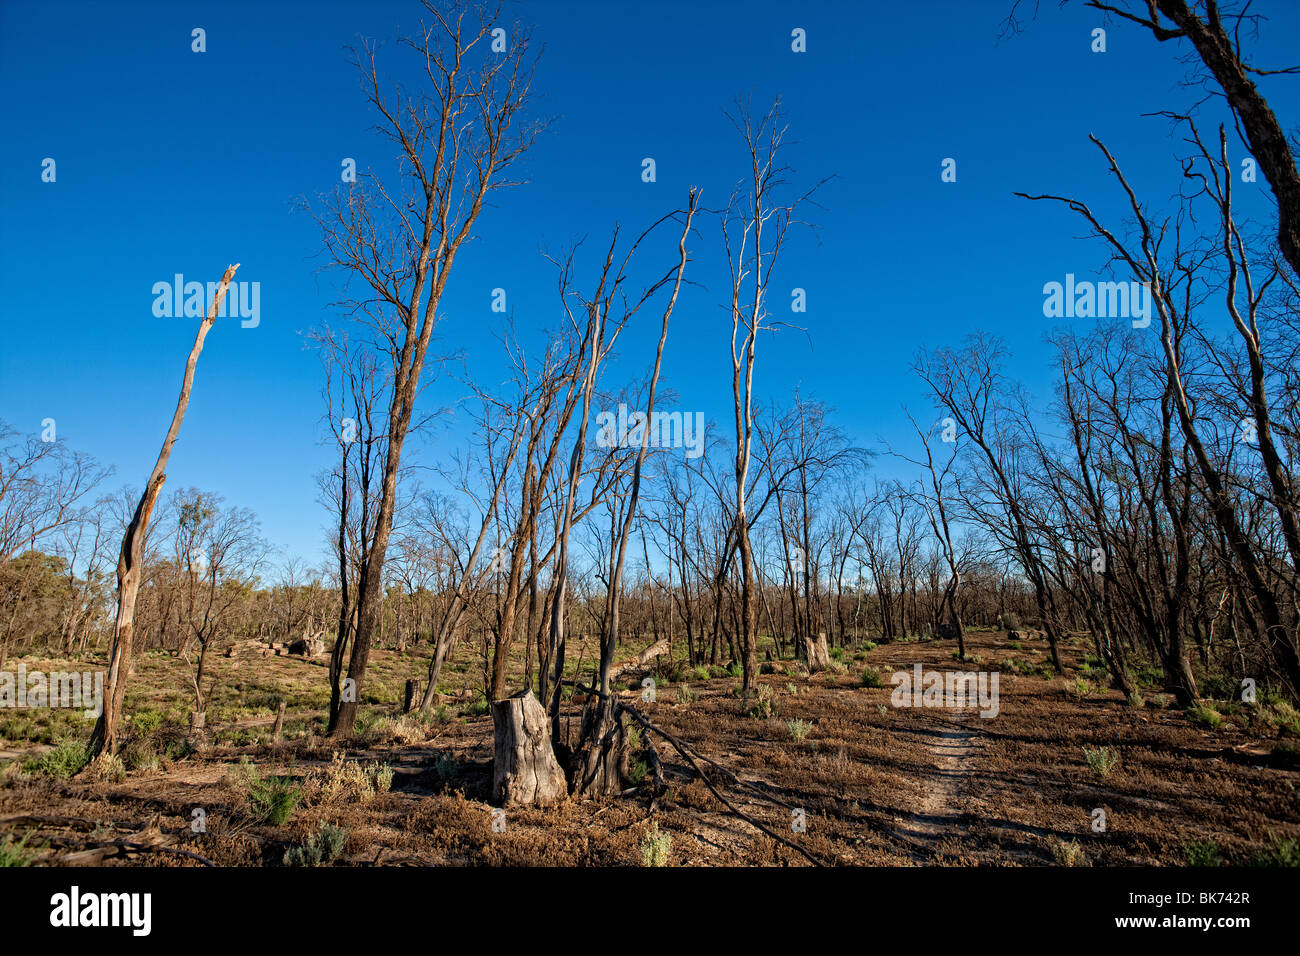 Dead trees in the Murray Darling Basin of Australia. - Stock Image